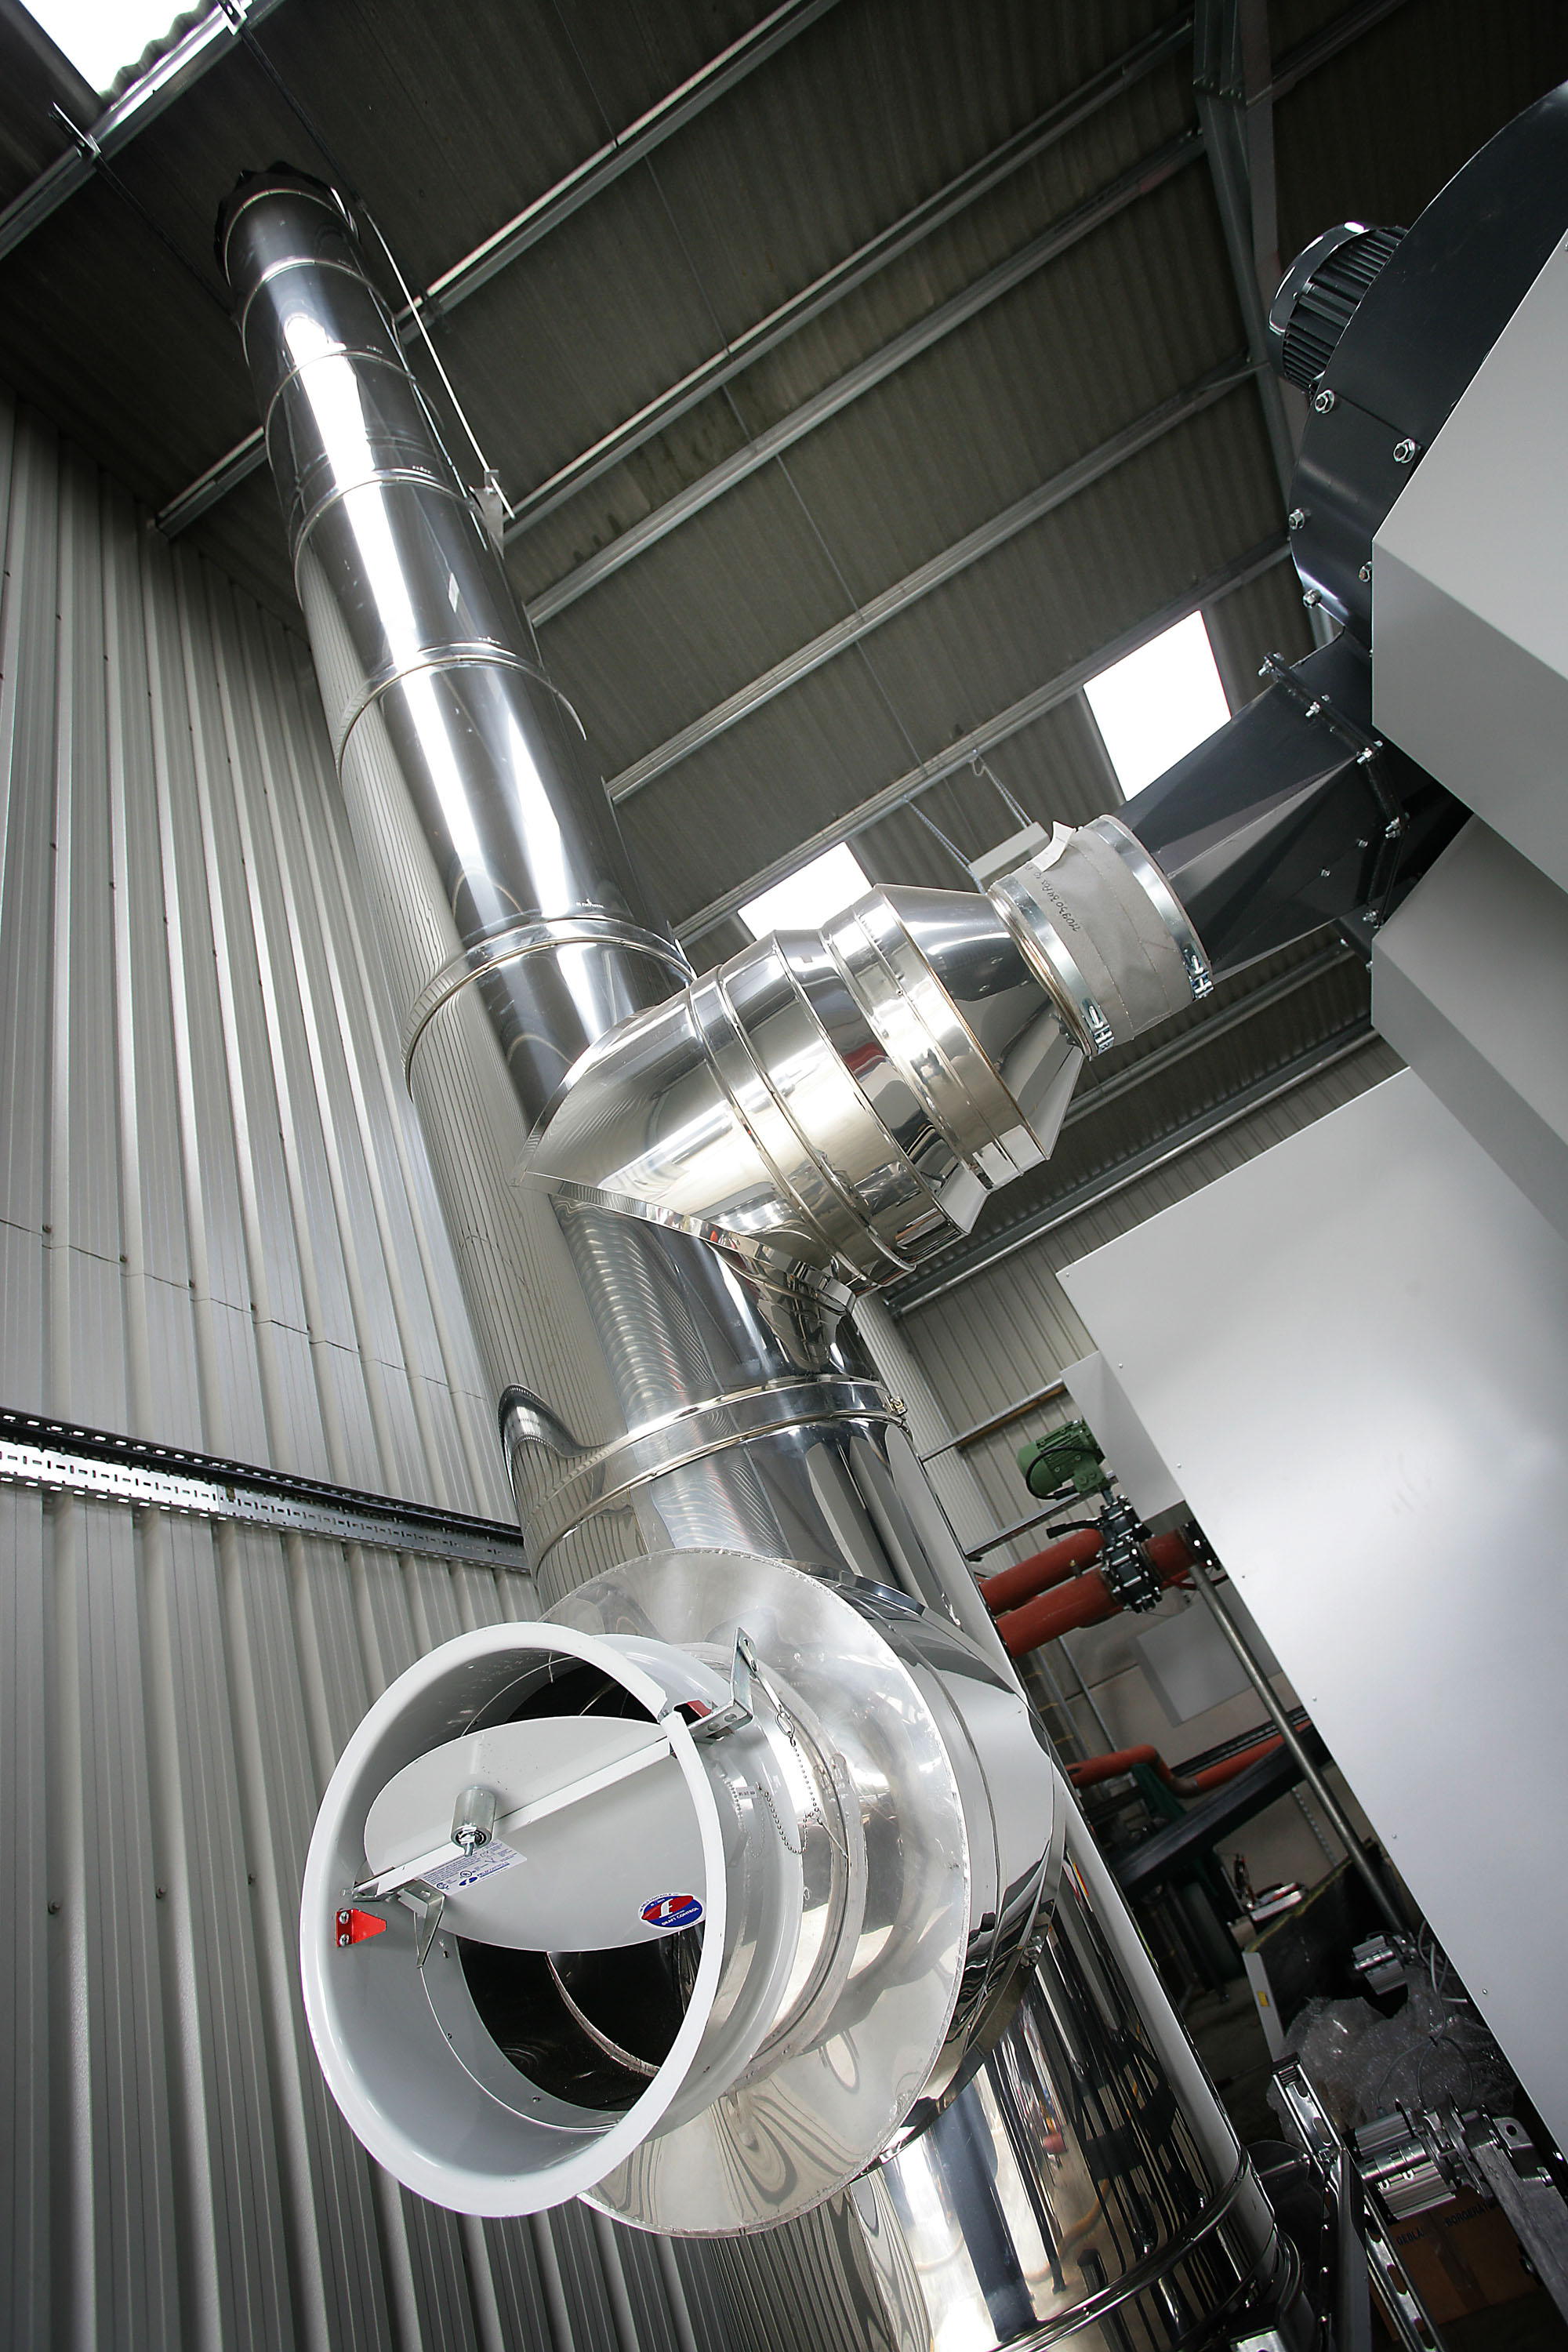 BIOMASS FLUE SYSTEMS - How we can help biomass system owners.